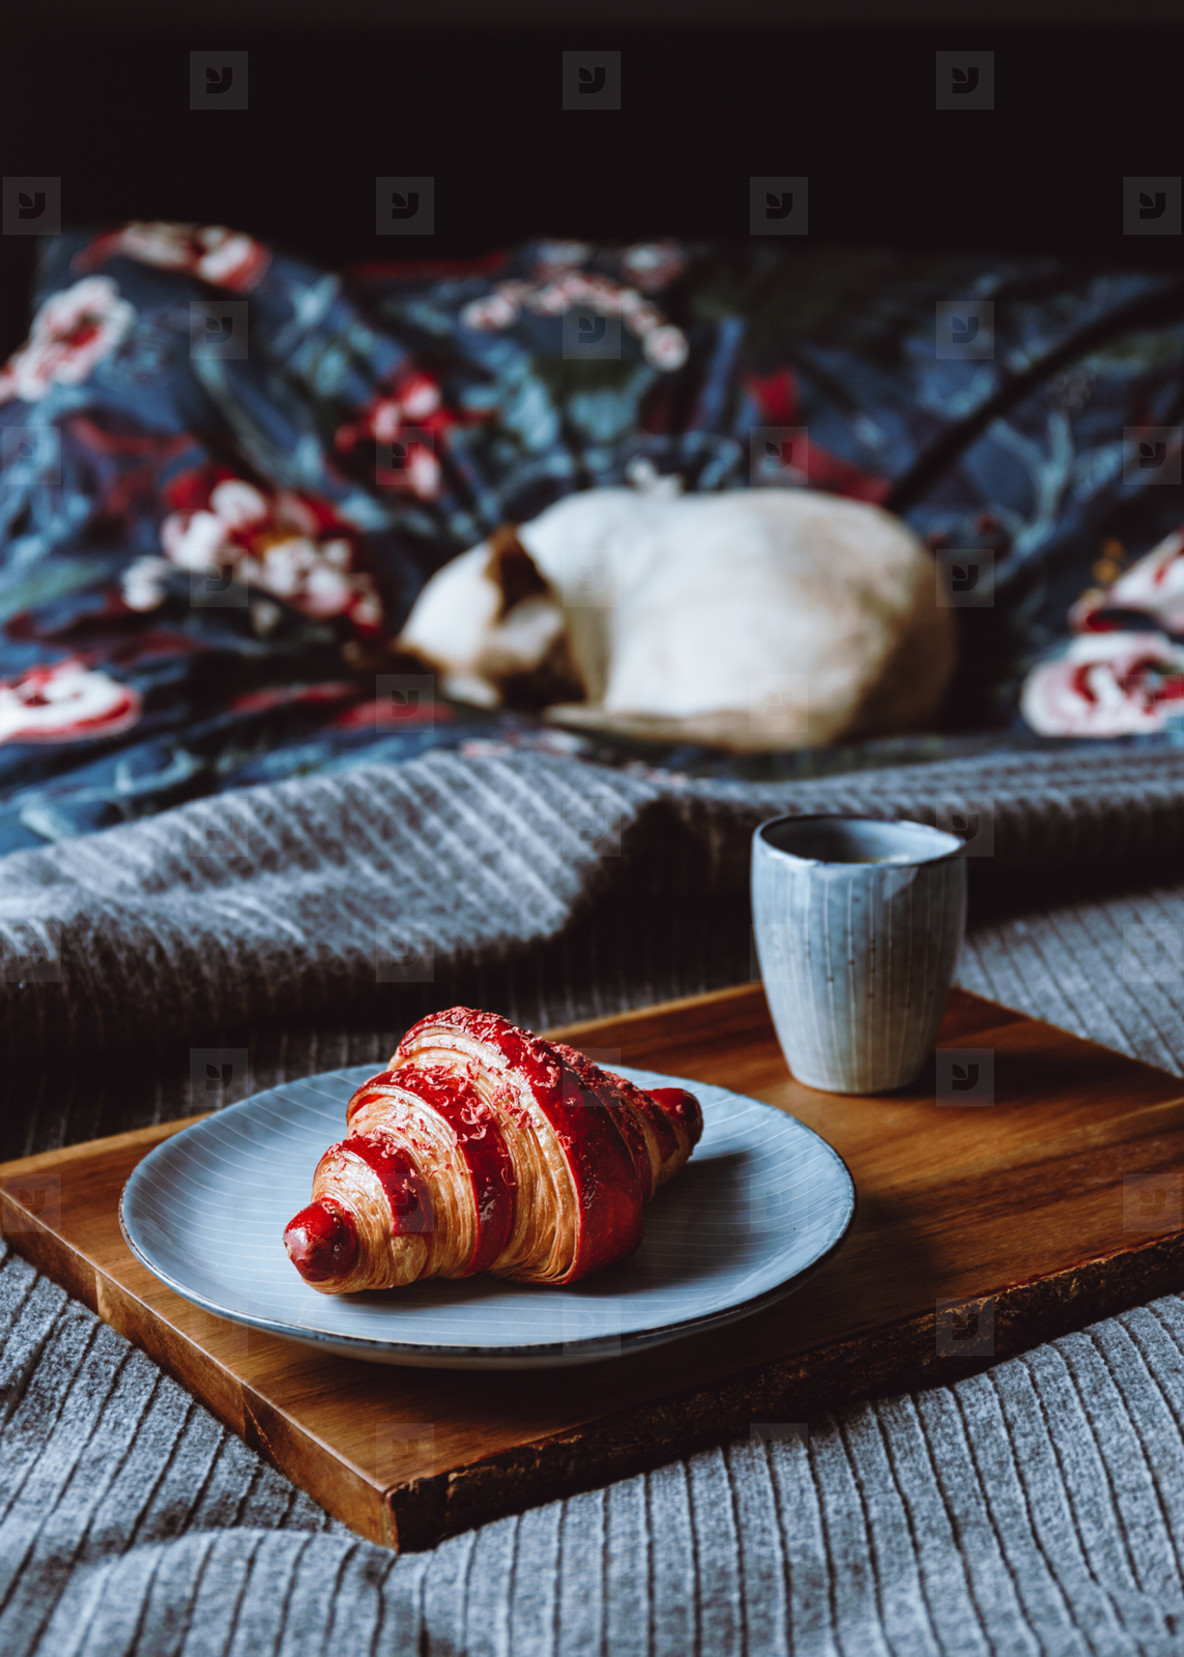 Cherry croissant with a cup of espresso on a wooden tray in a bed  The concept of cozy morning at home